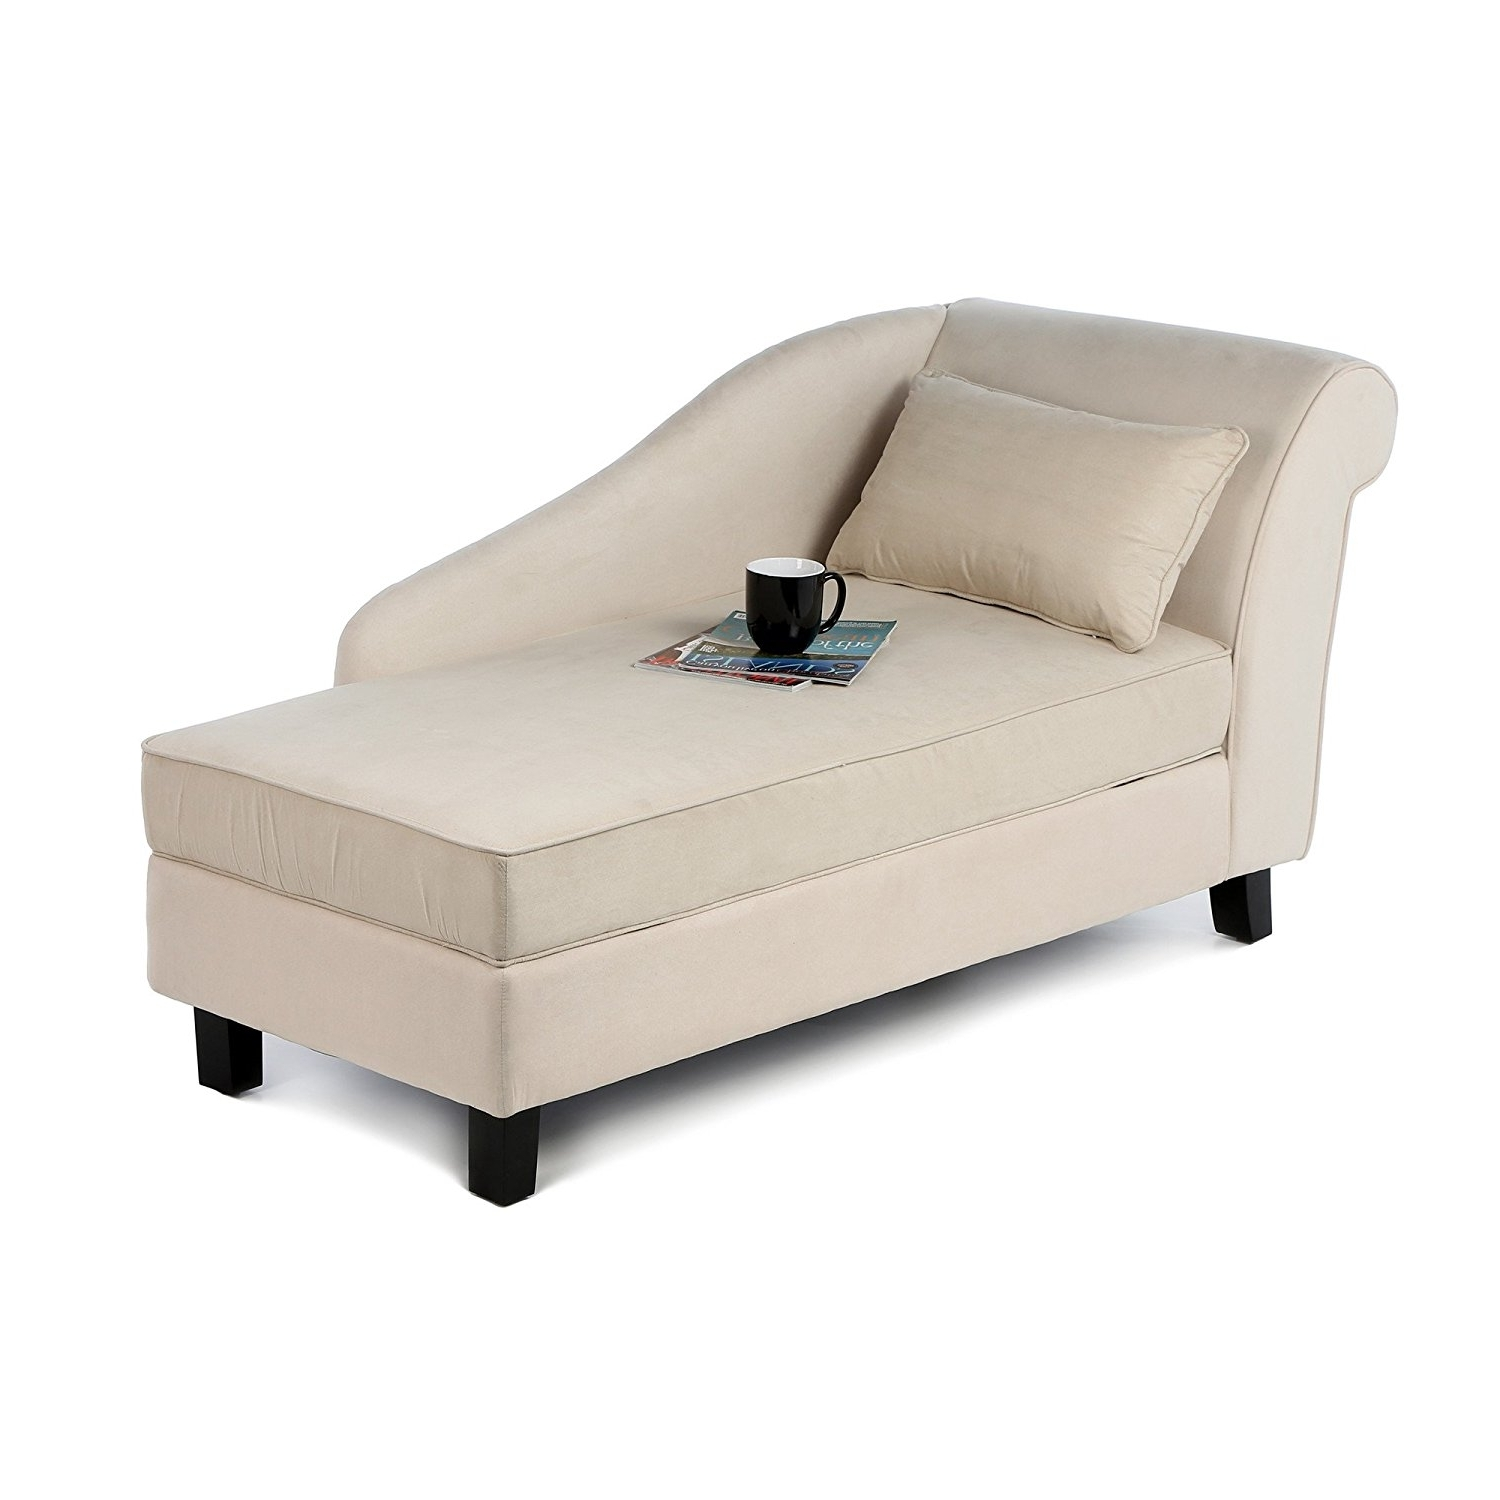 Chaise Lounges With Storage Regarding Fashionable Amazon: Castleton Home Storage Chaise Lounge Modern Long Chair (View 5 of 15)